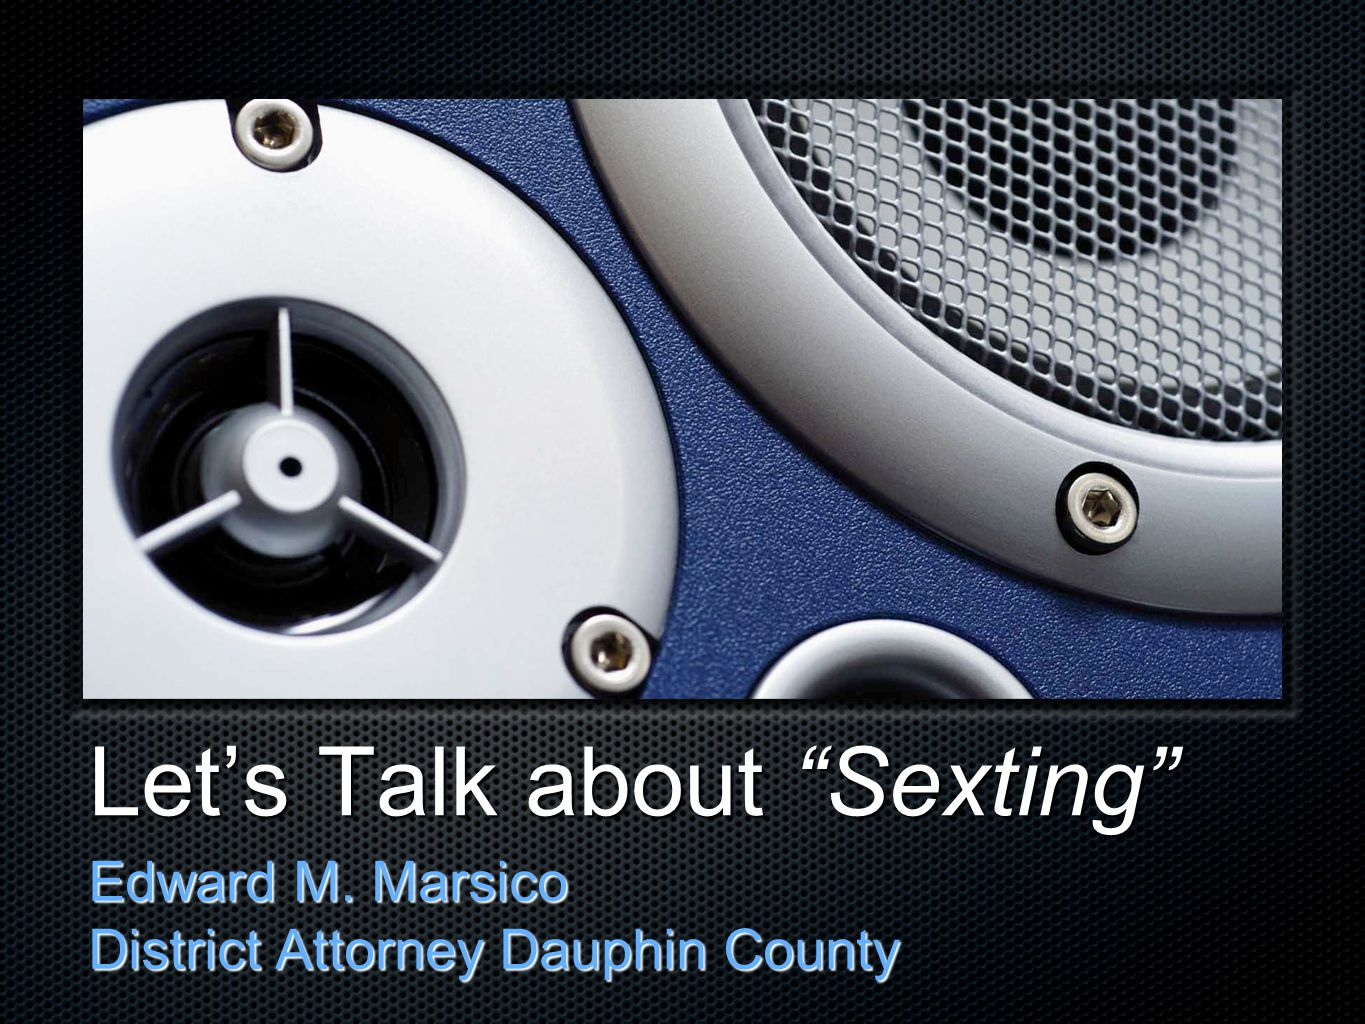 Let's Talk about Sexting Edward M. Marsico District Attorney Dauphin County